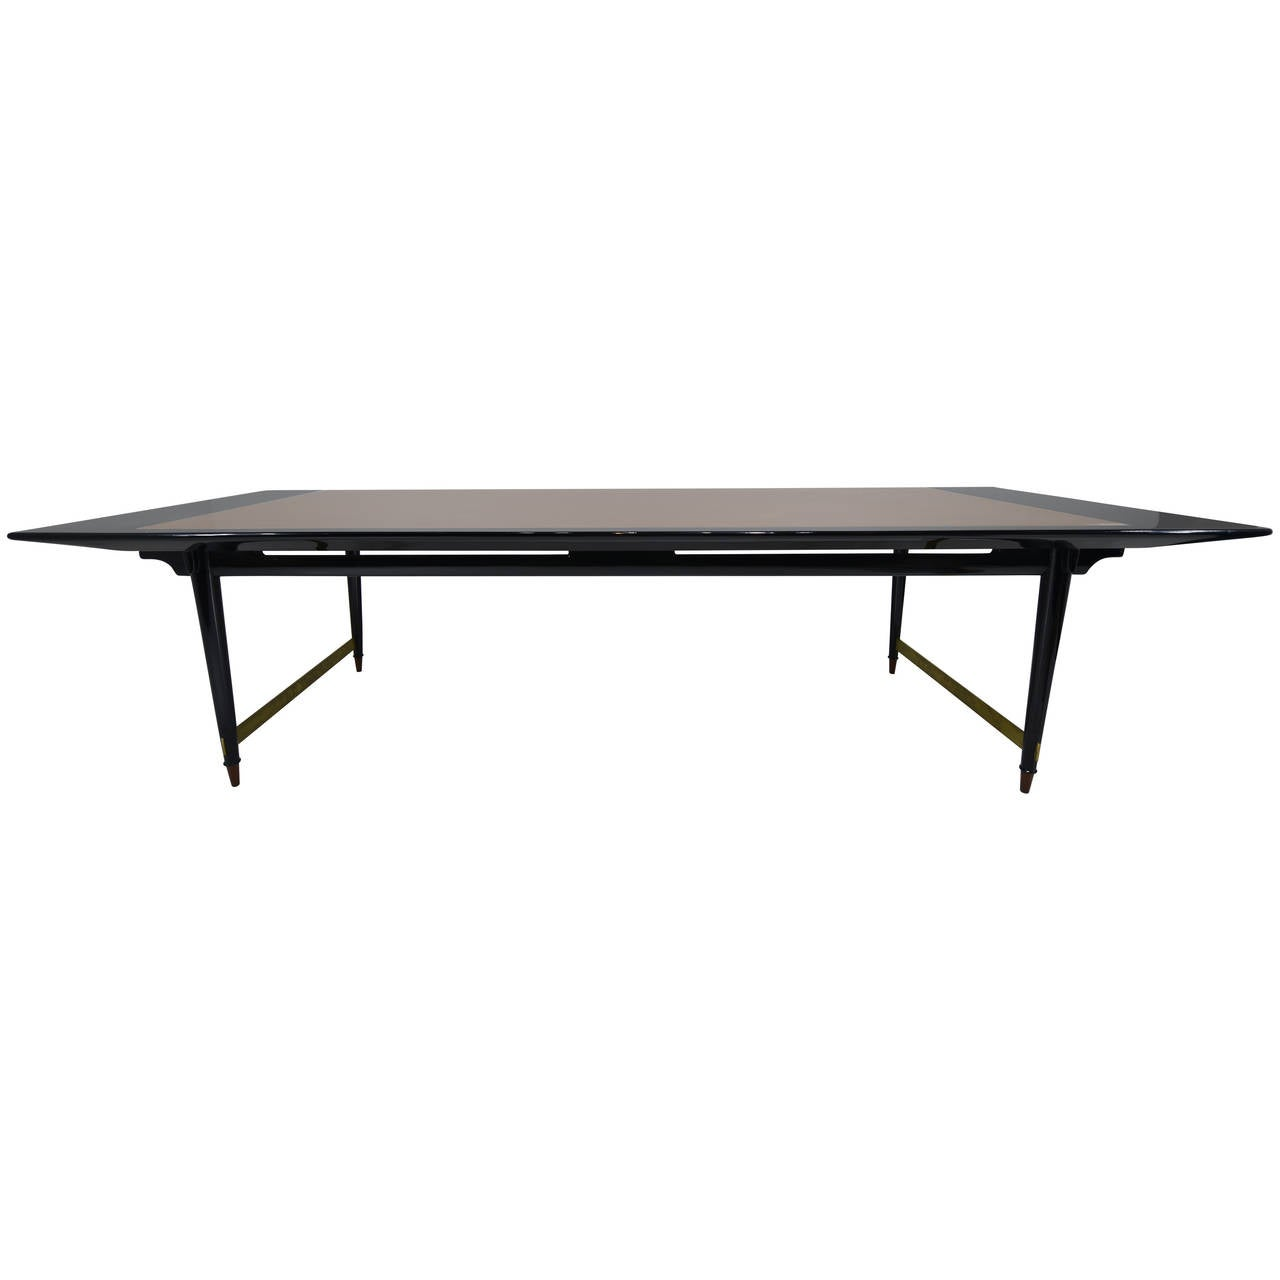 Frank Kyle Dining Table at 1stdibs : 2901392l from 1stdibs.com size 1280 x 1280 jpeg 29kB